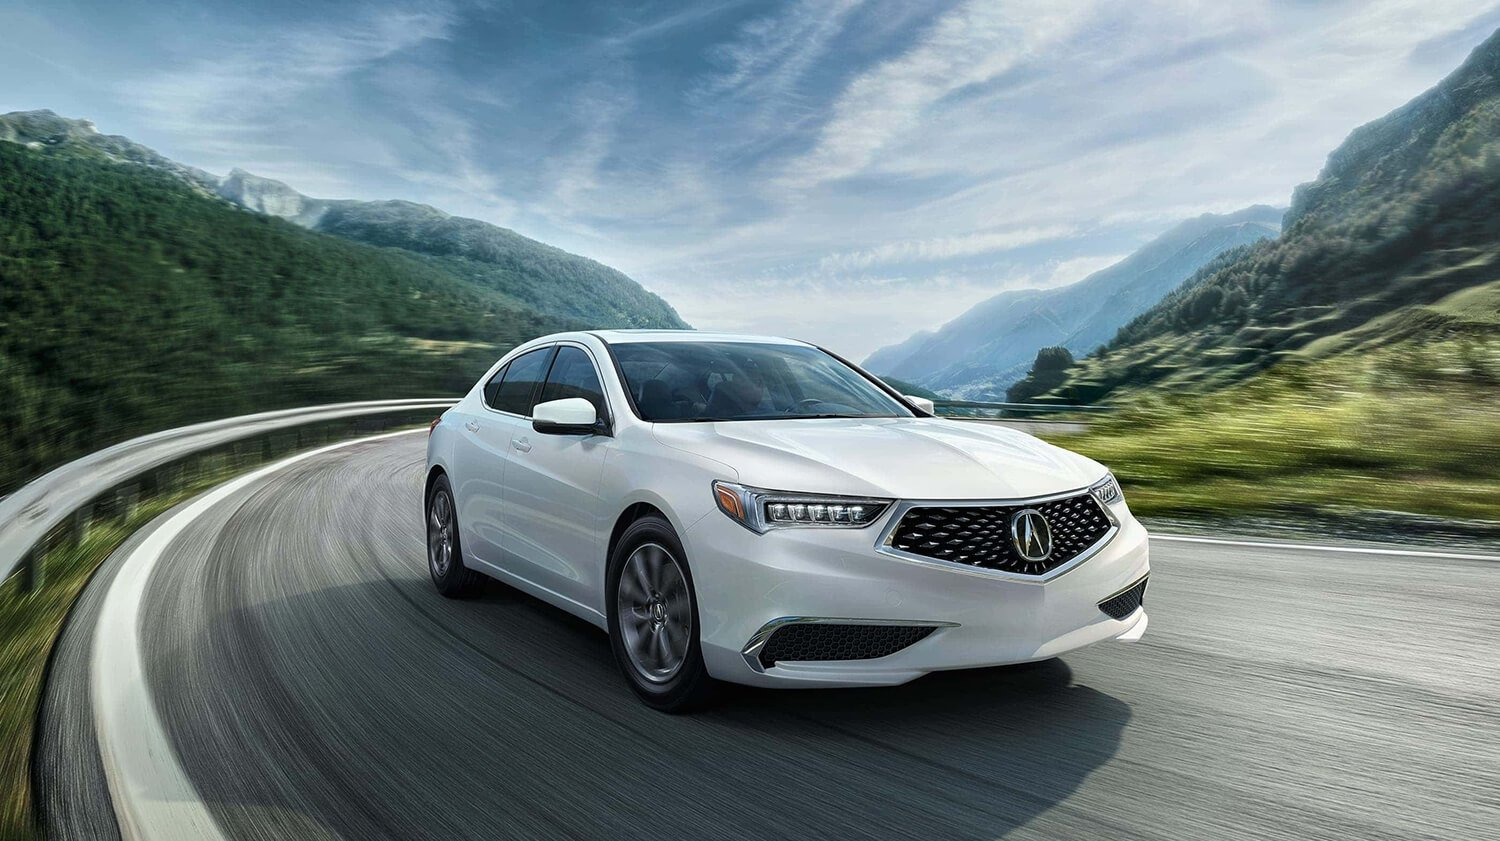 2018 Acura TLX Exterior Front Passenger Side Drive